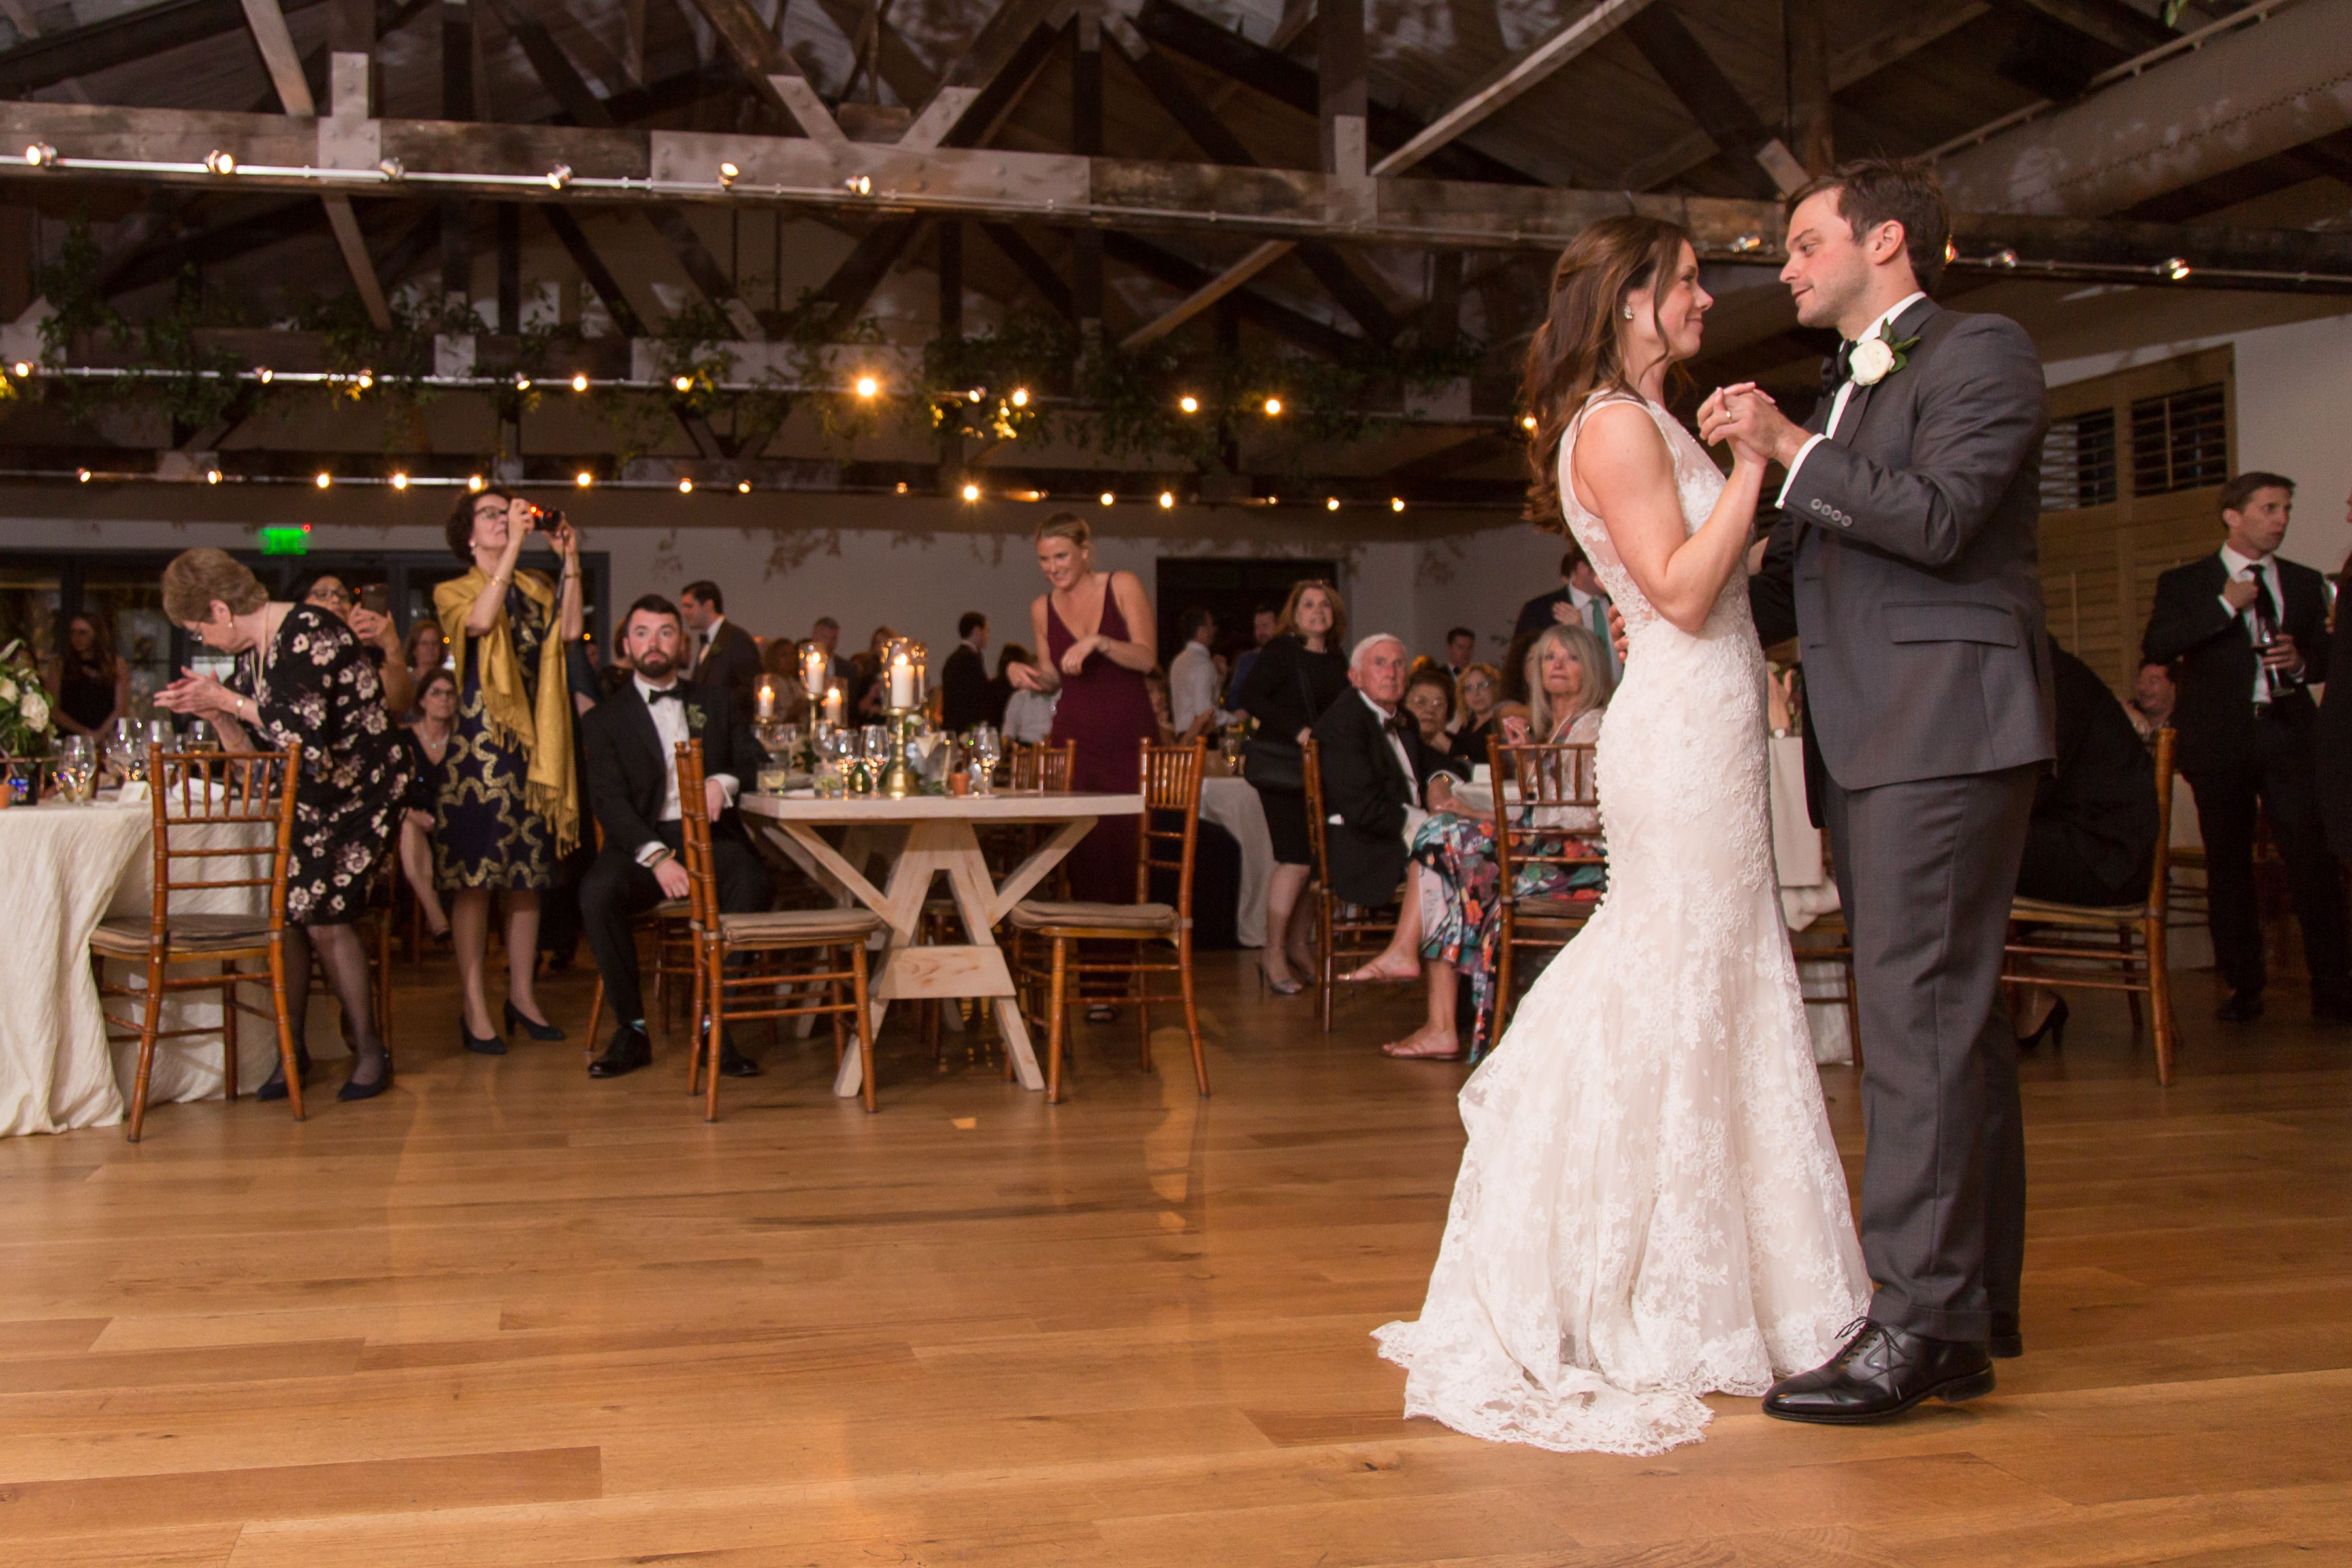 The Bride Groom Share Their First Dance Together In The Trolley Room At Cannon Green In Charleston Sc In 2020 Charleston Wedding Venues Event Venues Downtown Events